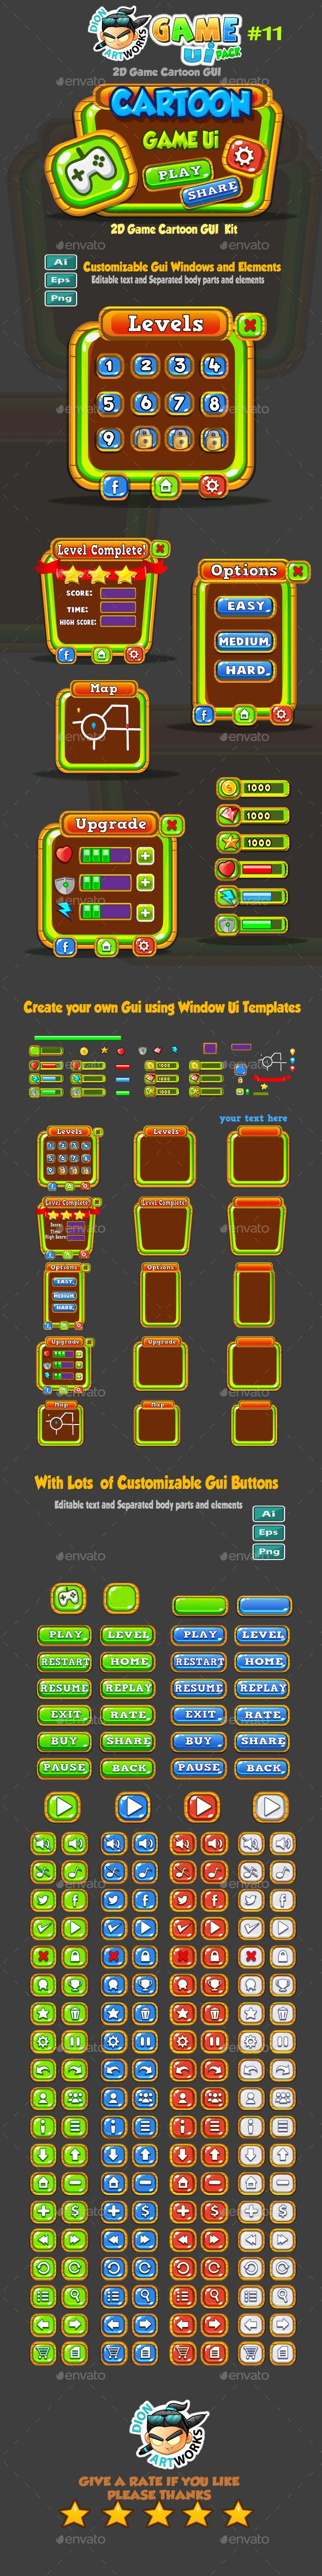 Pin by best Graphic Design on Game User Interface Templates | Game